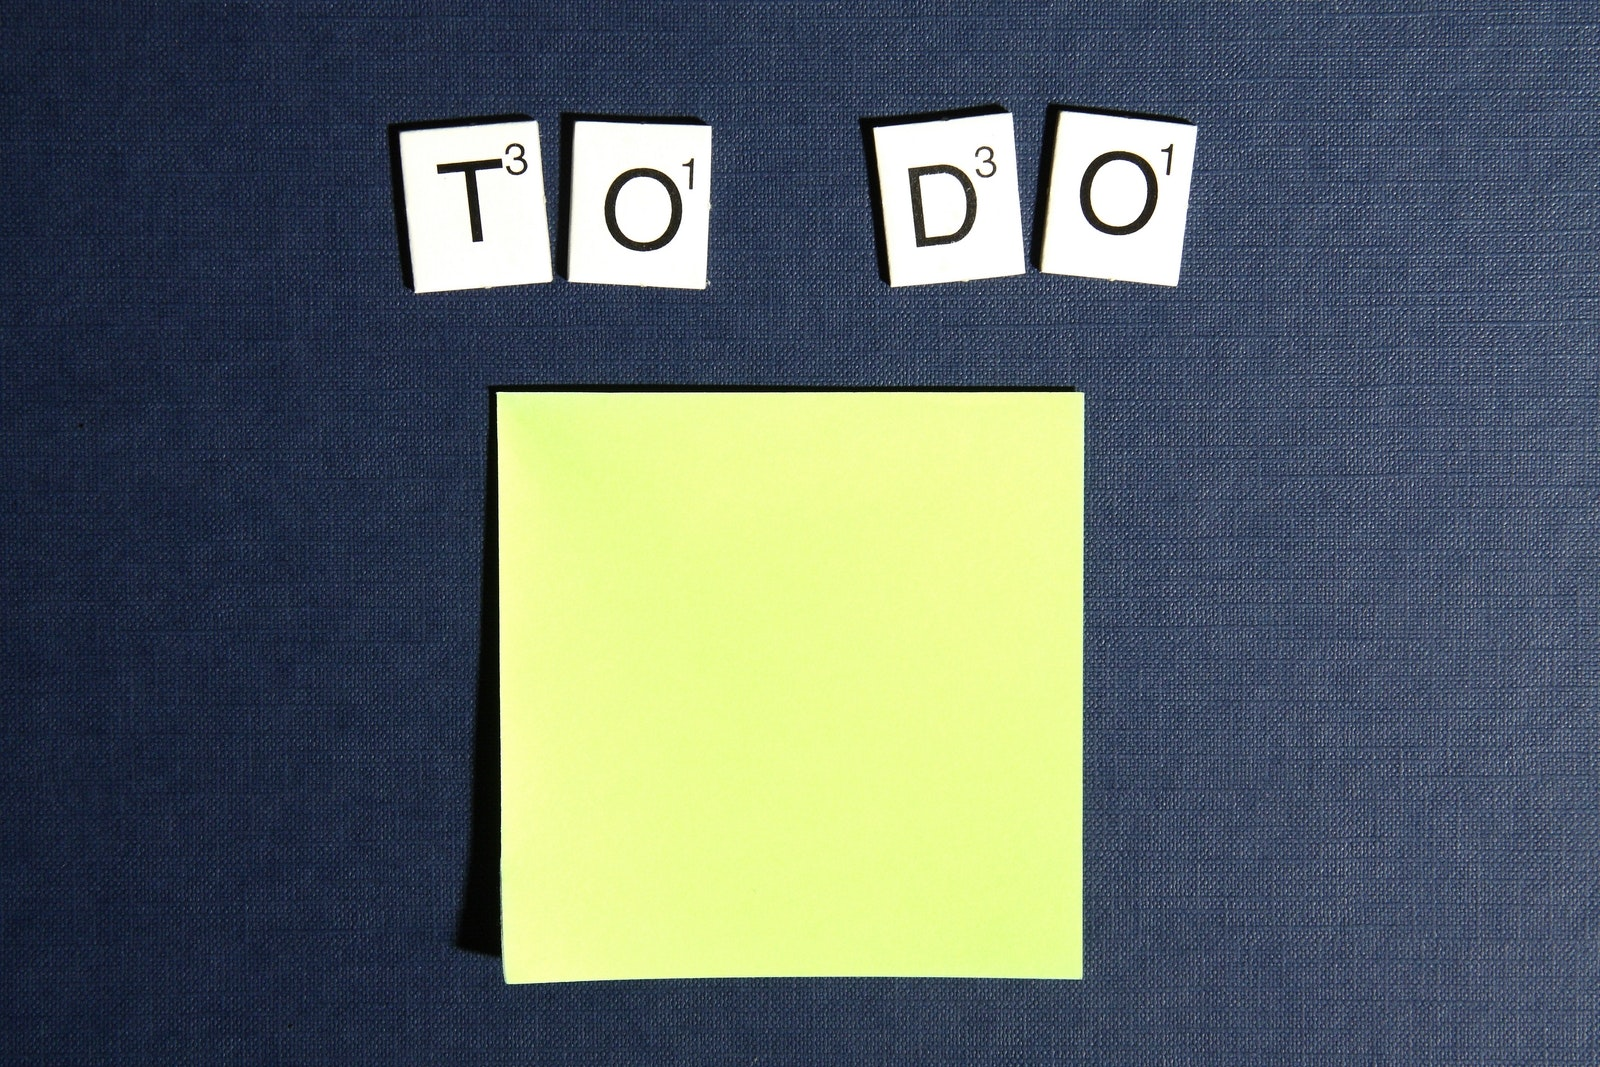 sticky notes that says to-do above it with Scrabble letters